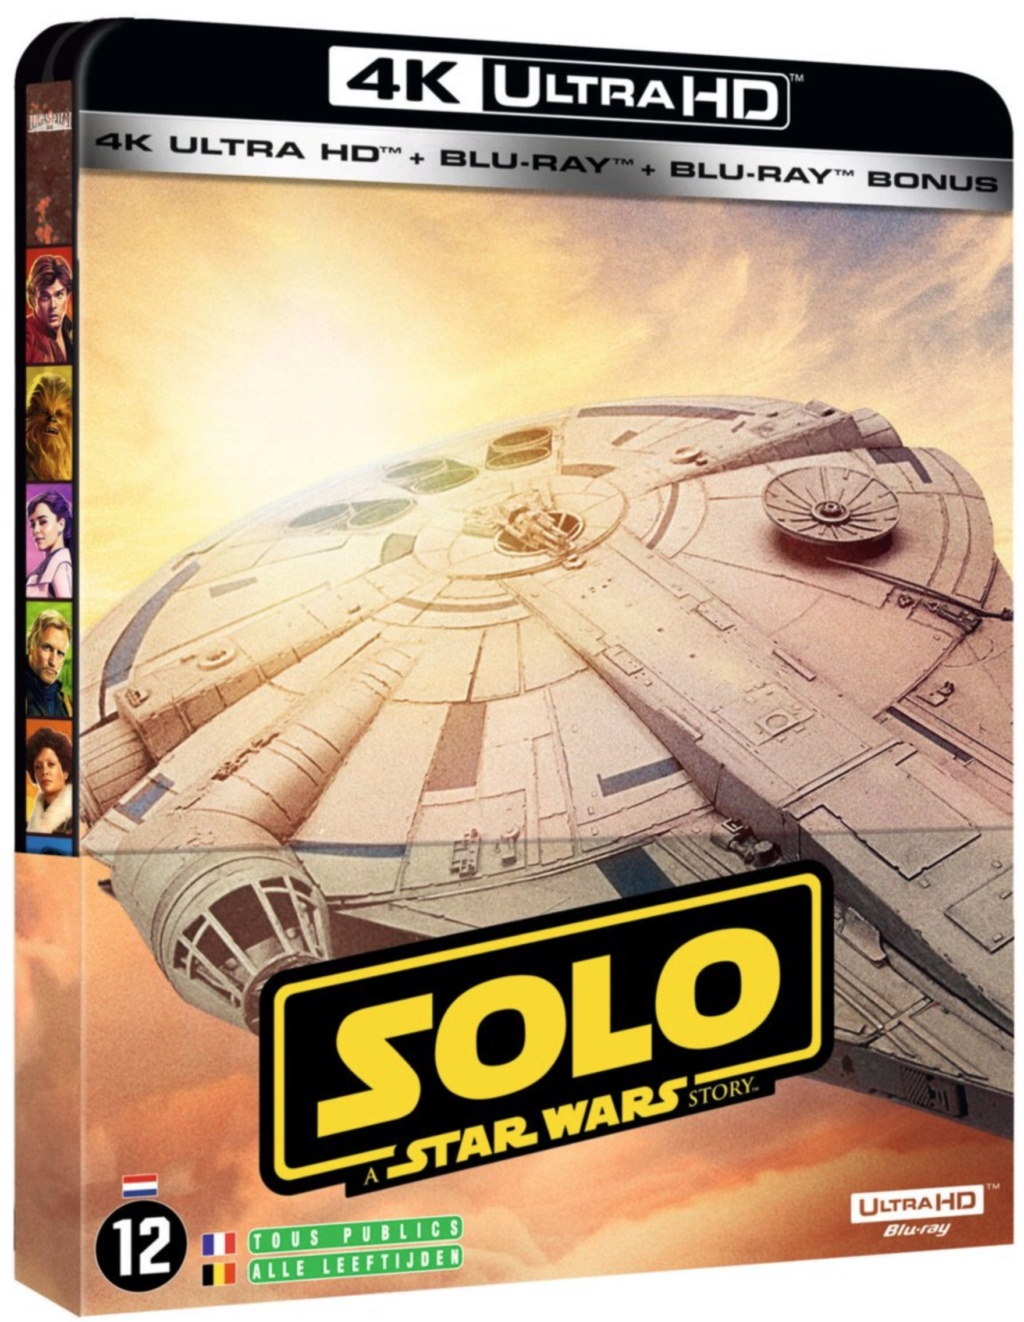 [Lucasfilm] Solo : A Star Wars Story (2018) - Page 10 Captur11